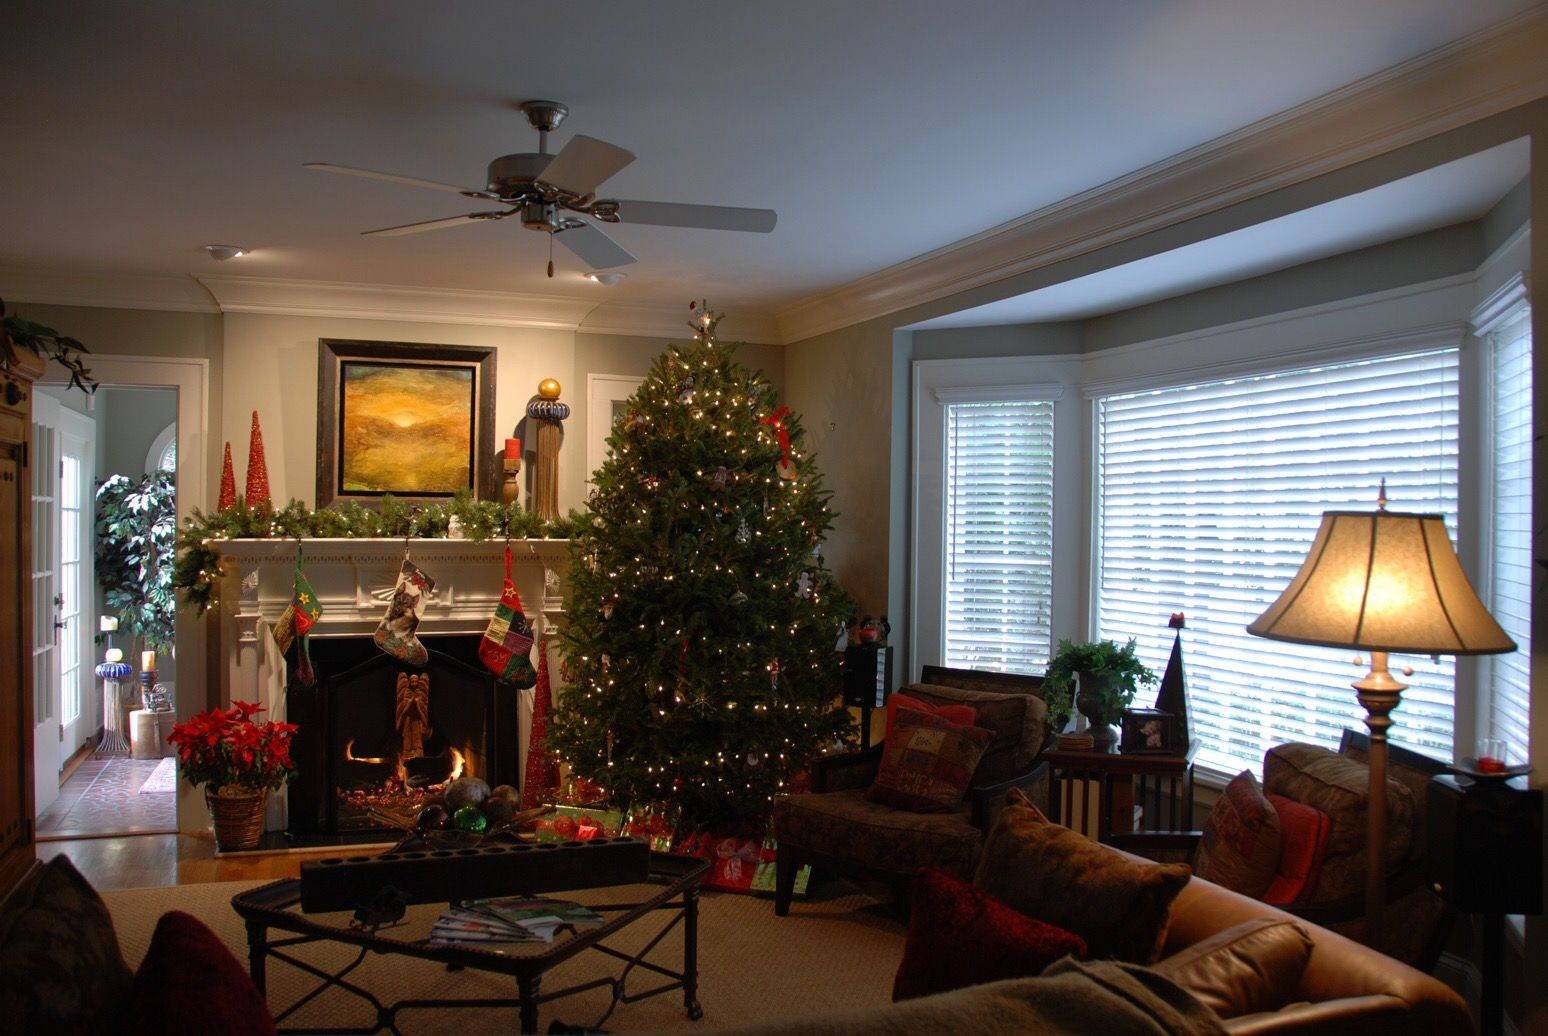 Pin by Darby on Vintage Christmas | Christmas living rooms ...